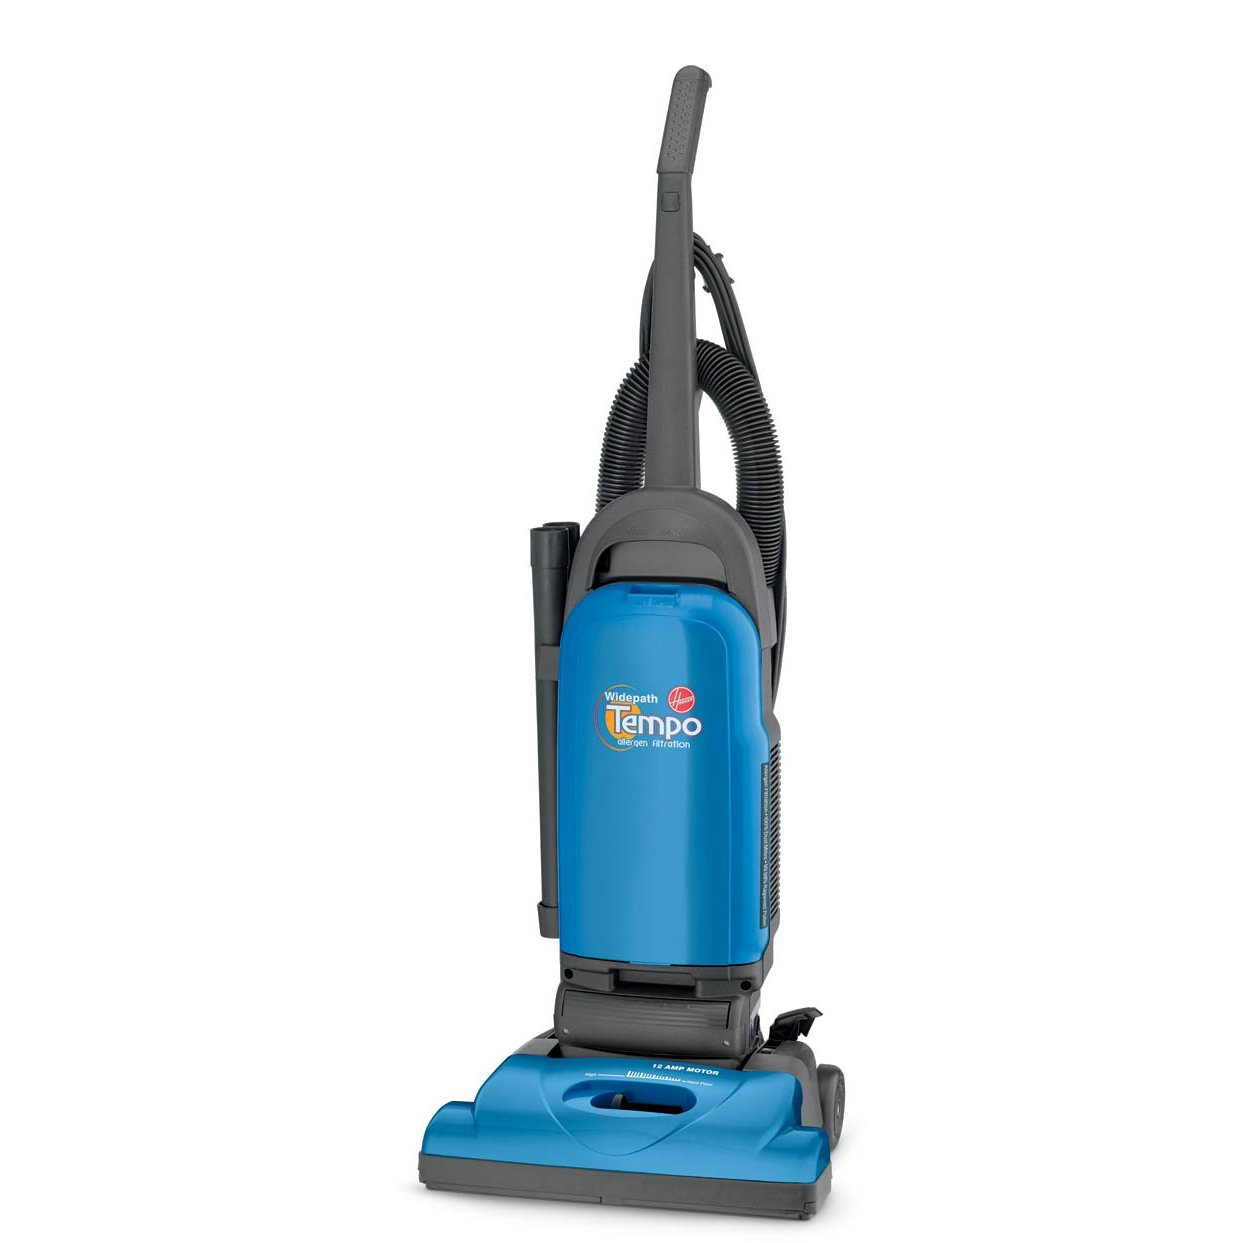 Hoover Tempo Widepath Upright Vacuum, Bagged, U5140-900 Review